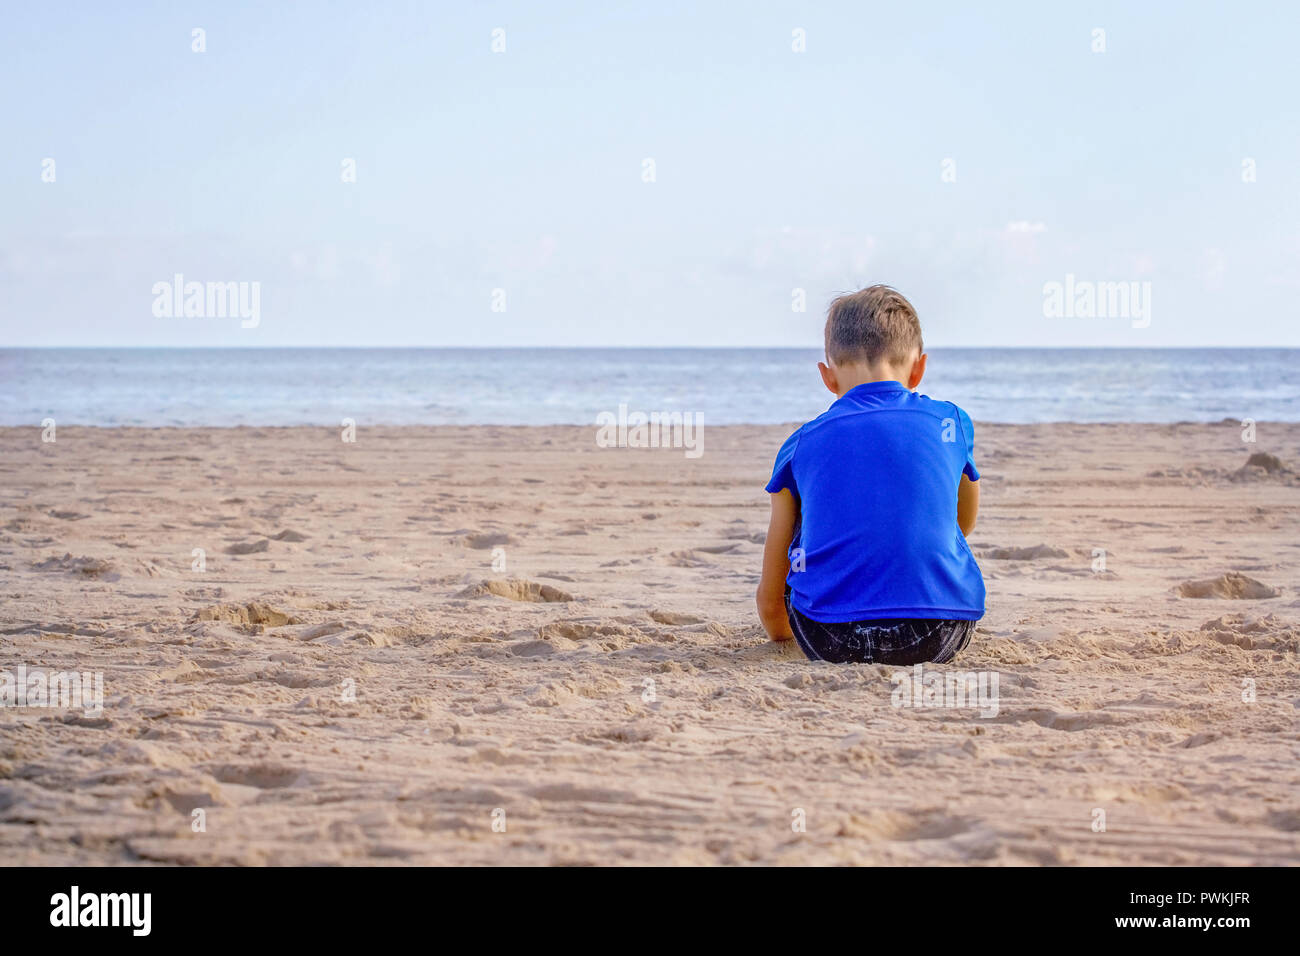 Sad boy beach stock photos sad boy beach stock images alamy